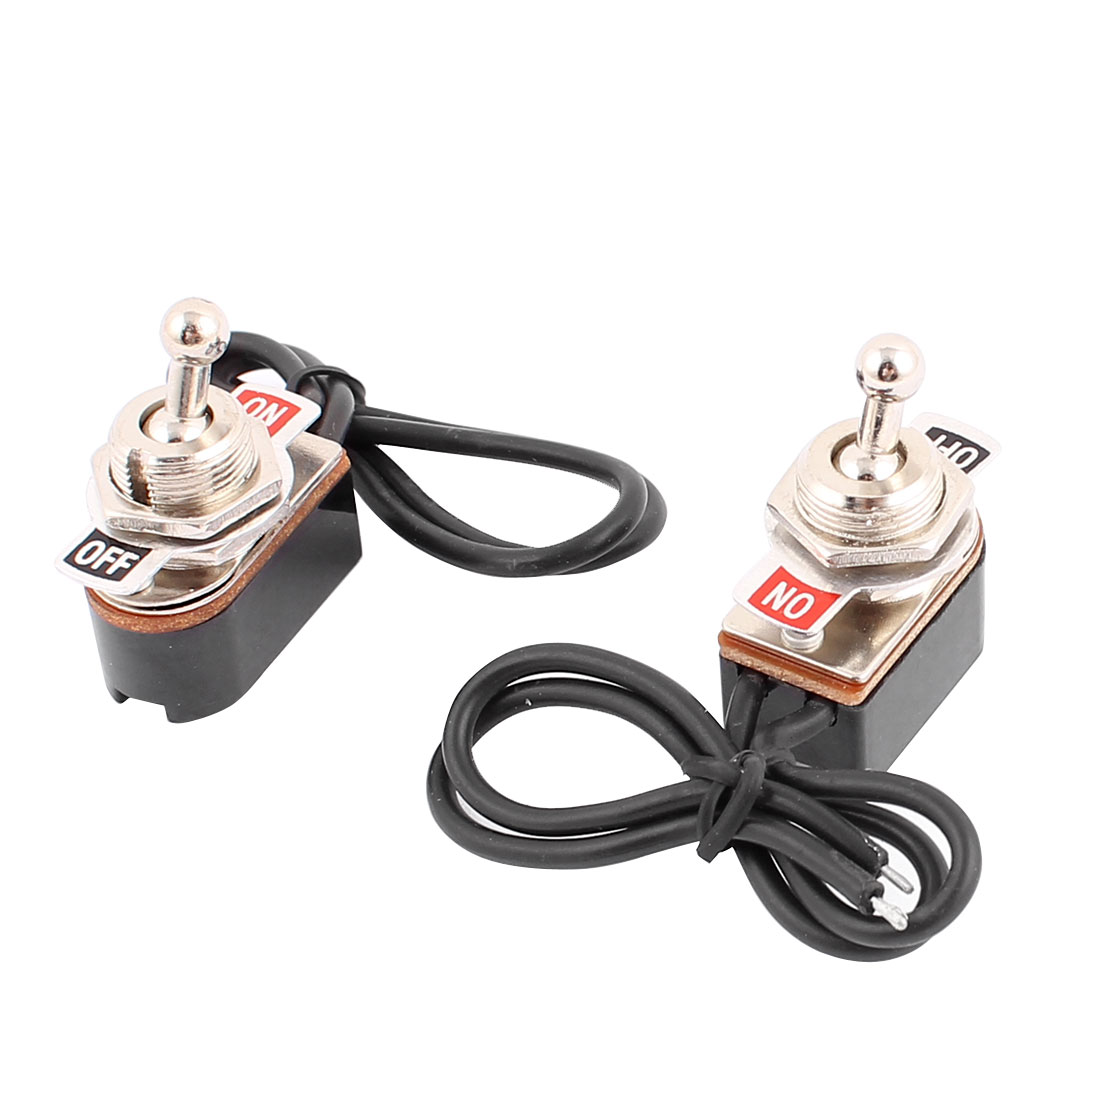 2 Pcs 250VAC 3A 125VAC 6A SPST ON-OFF 2 Positions Self Locking Power Toggle Switch